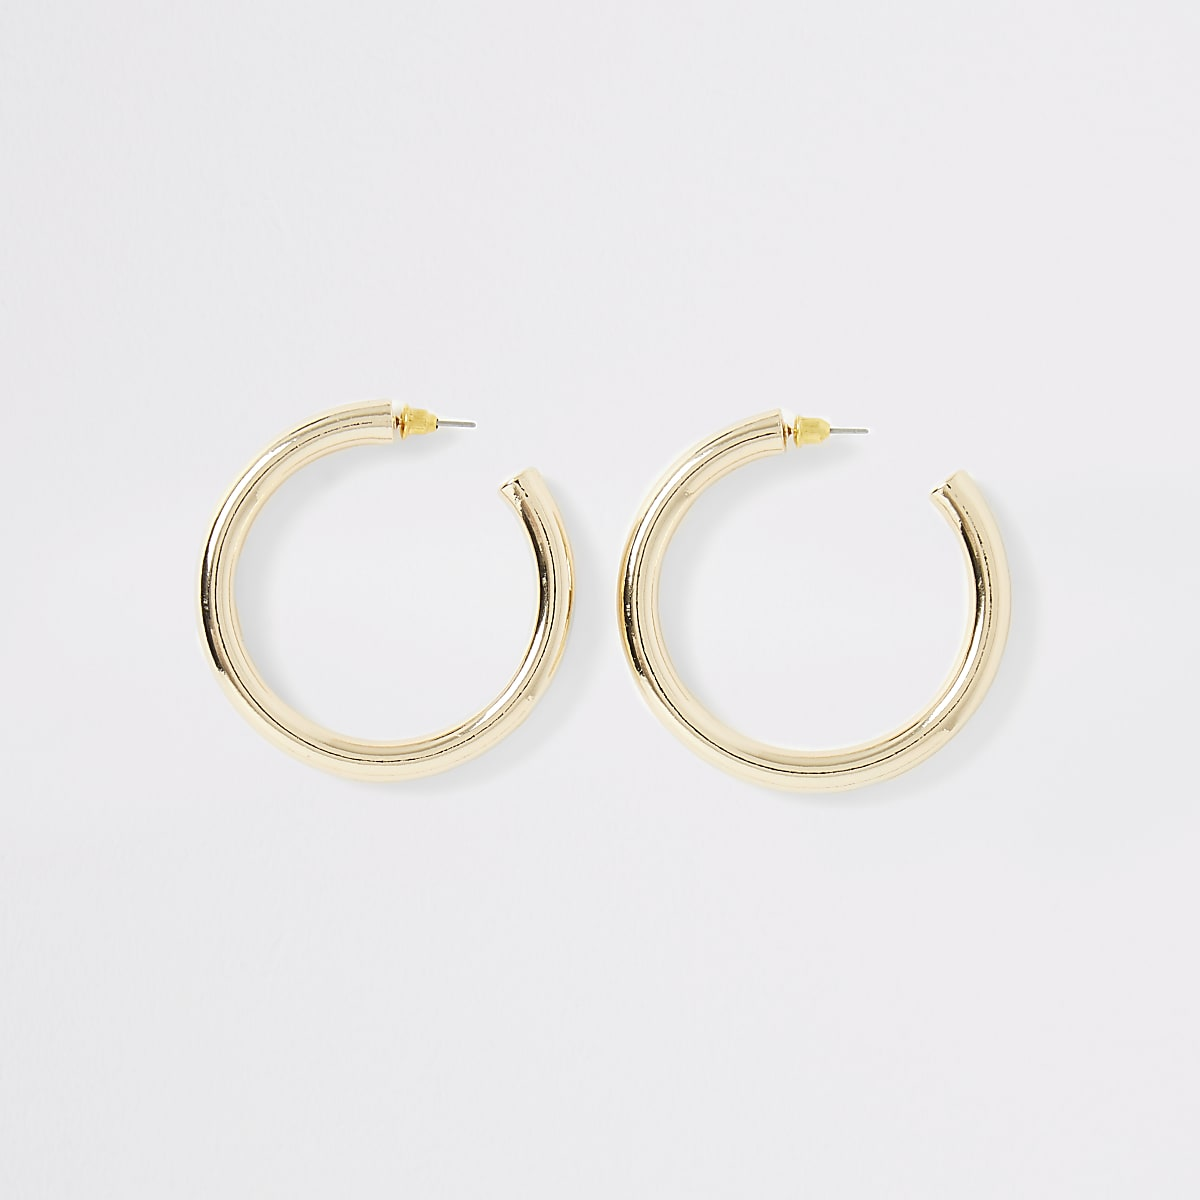 Gold color chunky hoop earrings